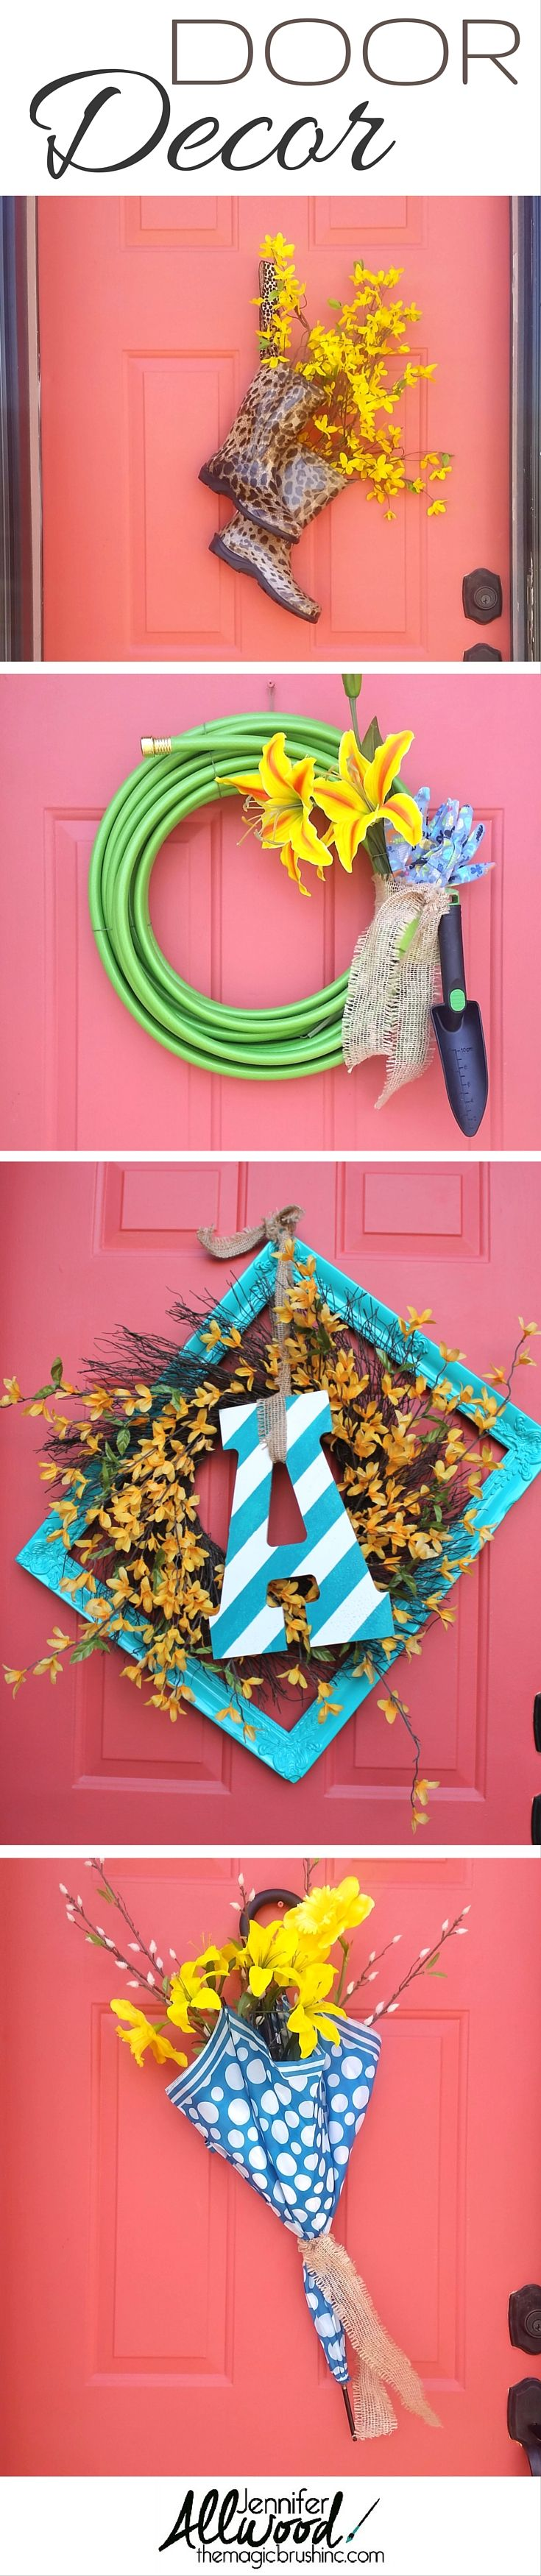 Info's : Front door decoration ideas. Rain boots + flowers, garden hose + flowers, painted art frame + painted wooden letter + flowers and a bright bold umbrella + flowers. More decorating tips and DIY projects at theMagicBrushinc.com